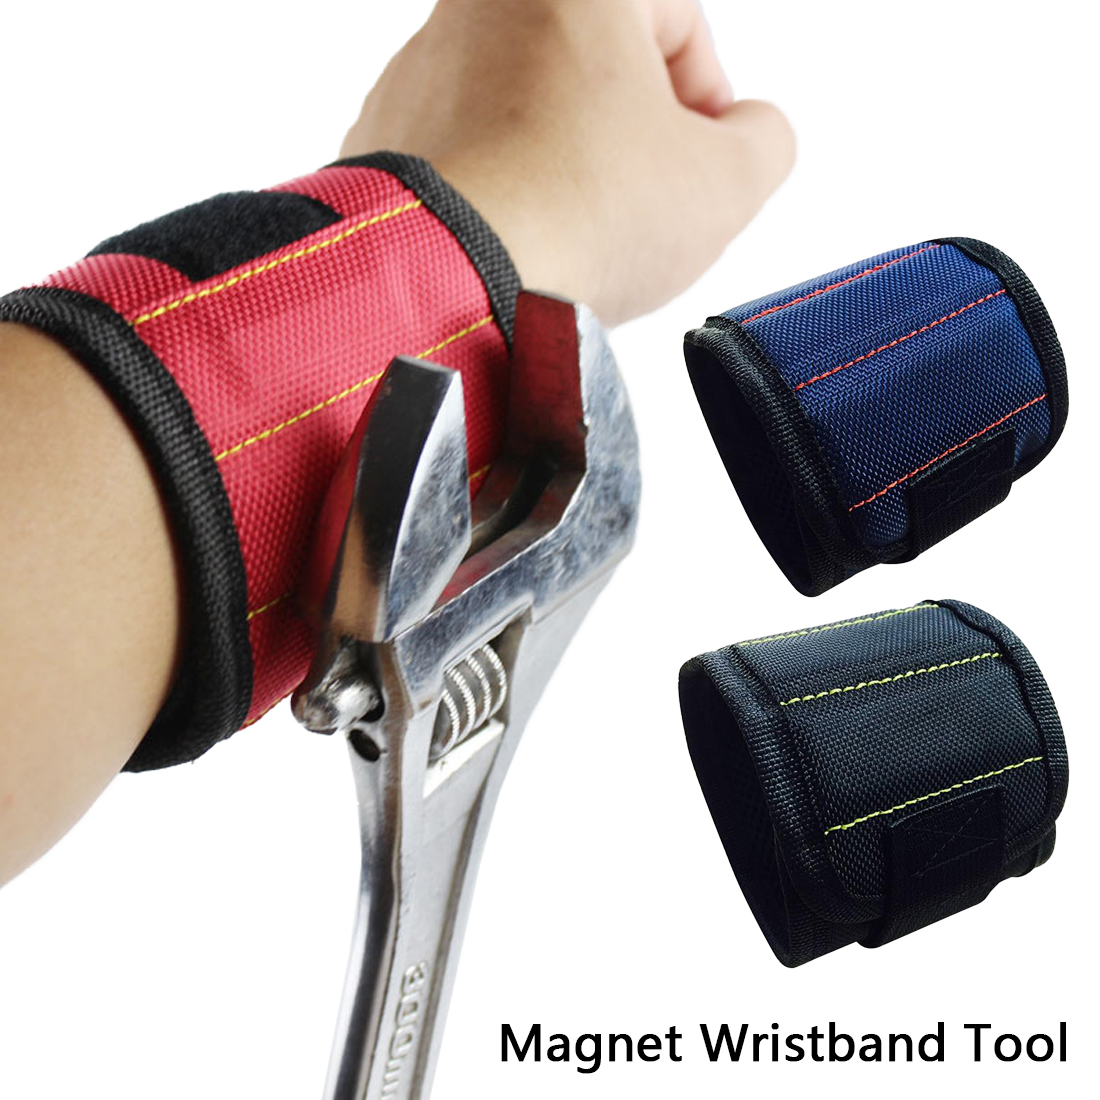 Strong 3 Magnetic Magnet Wristband Pocket Wrist Support Tool Bag Hand Bracelet Pouch Bag Screws Drill Holder